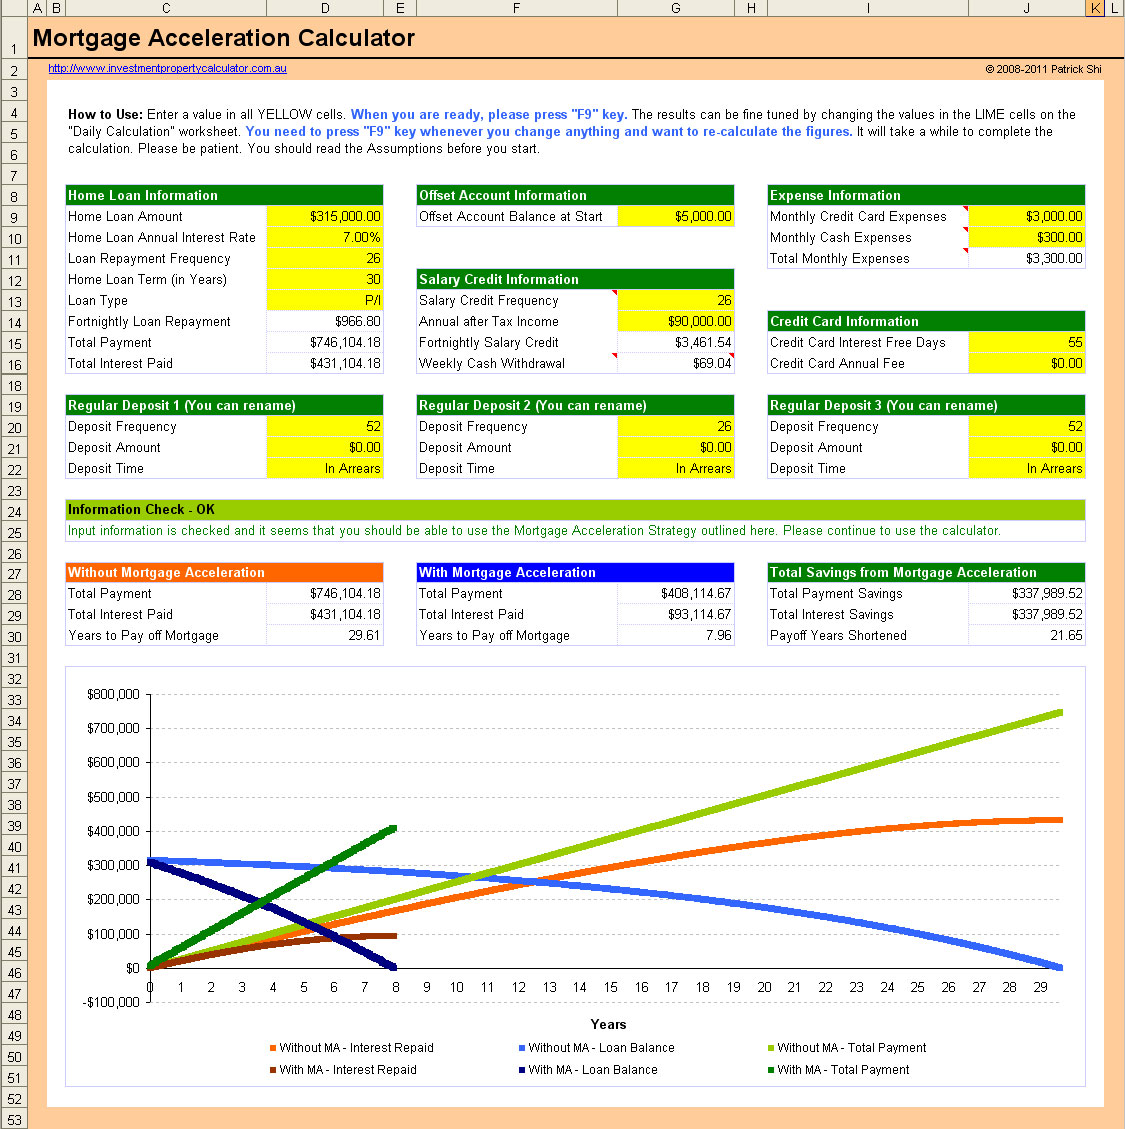 Mortgage Acceleration Calculator